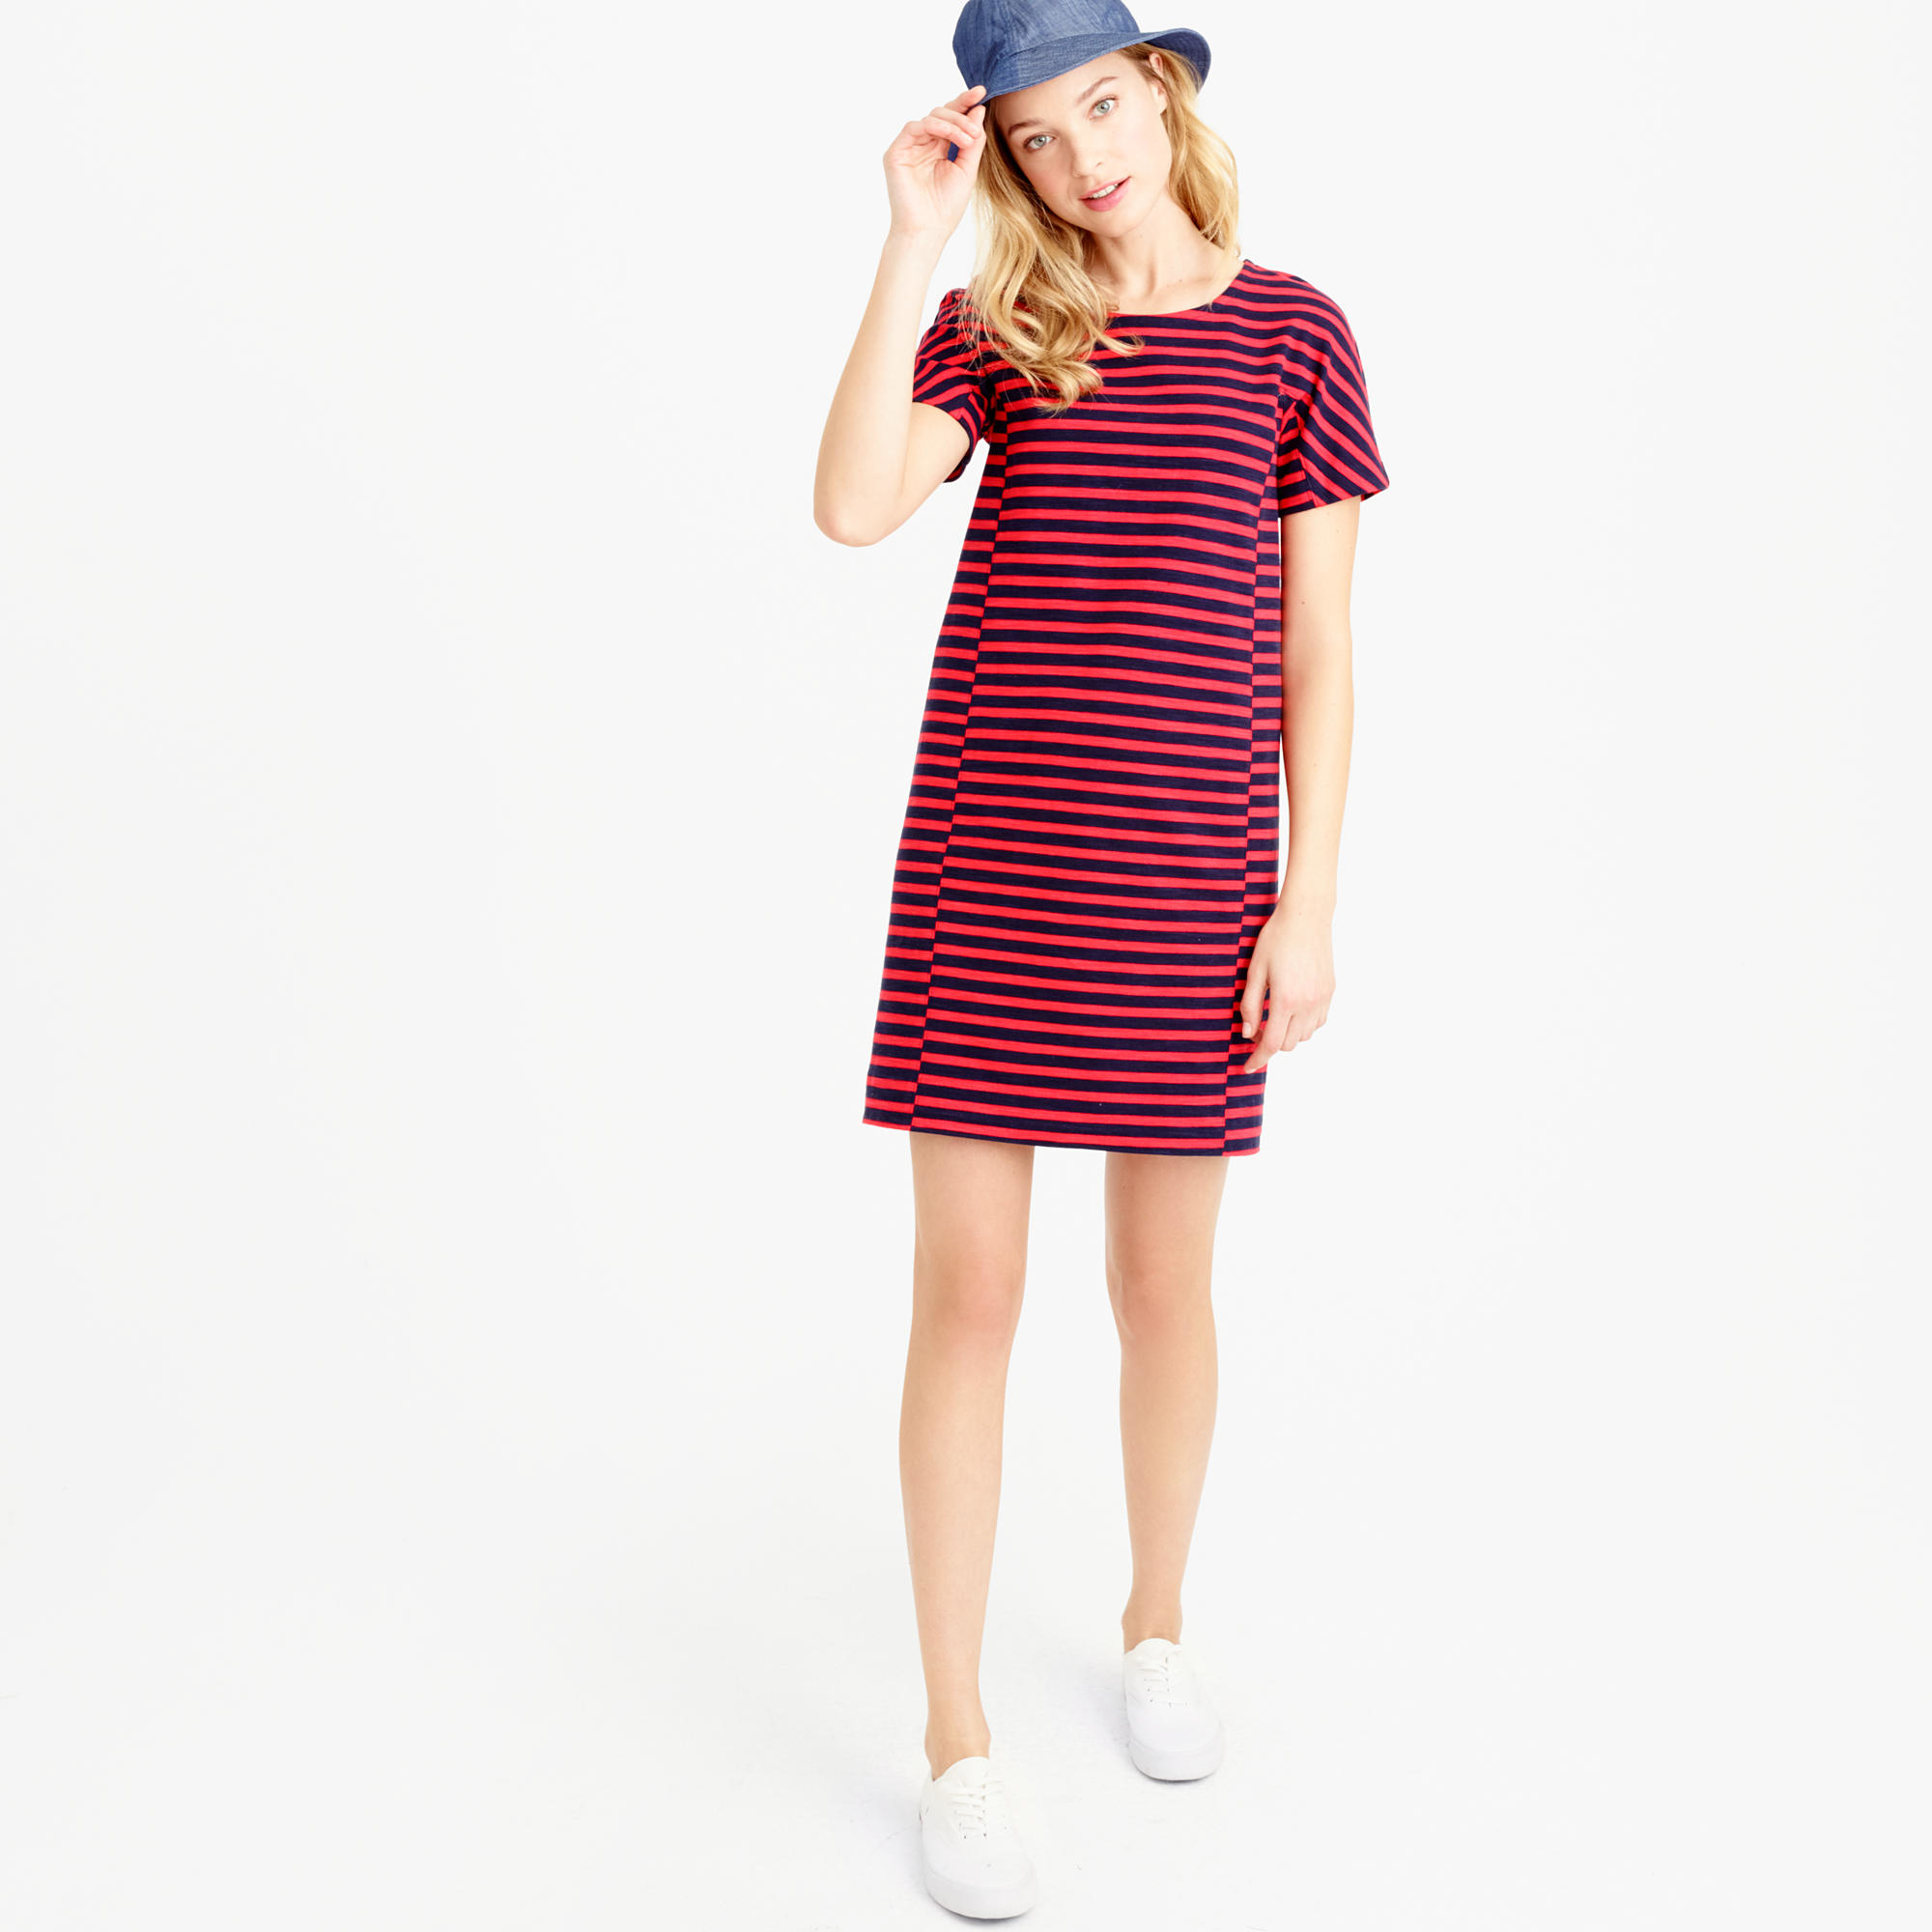 2b1ef65cd8f2 Lyst - J.Crew Striped T-shirt Dress in Blue